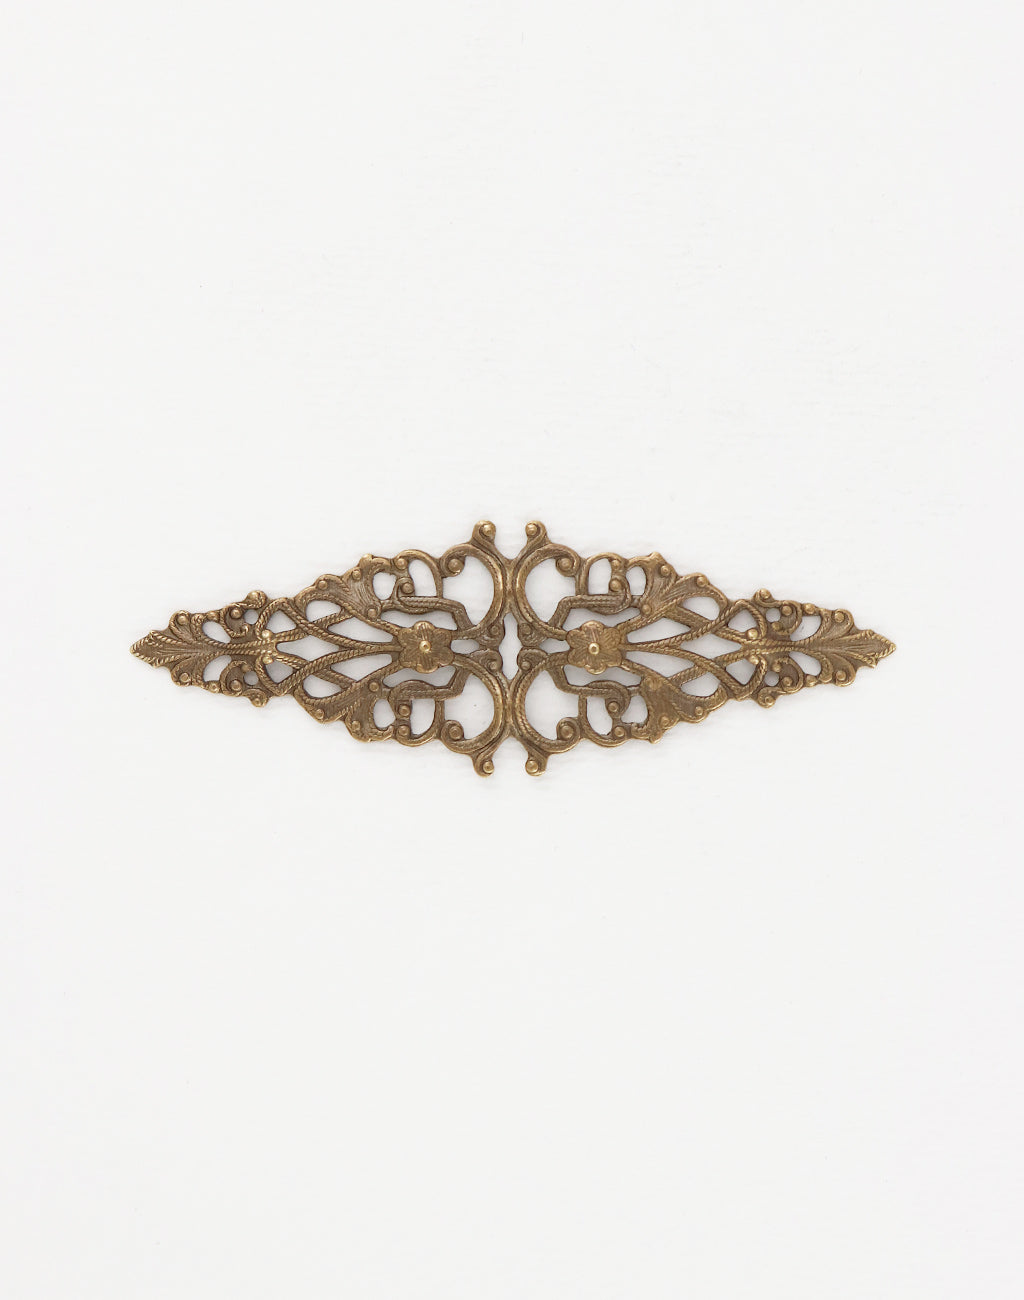 Diamond Trellis Filigree, 64x21mm, (1pc)